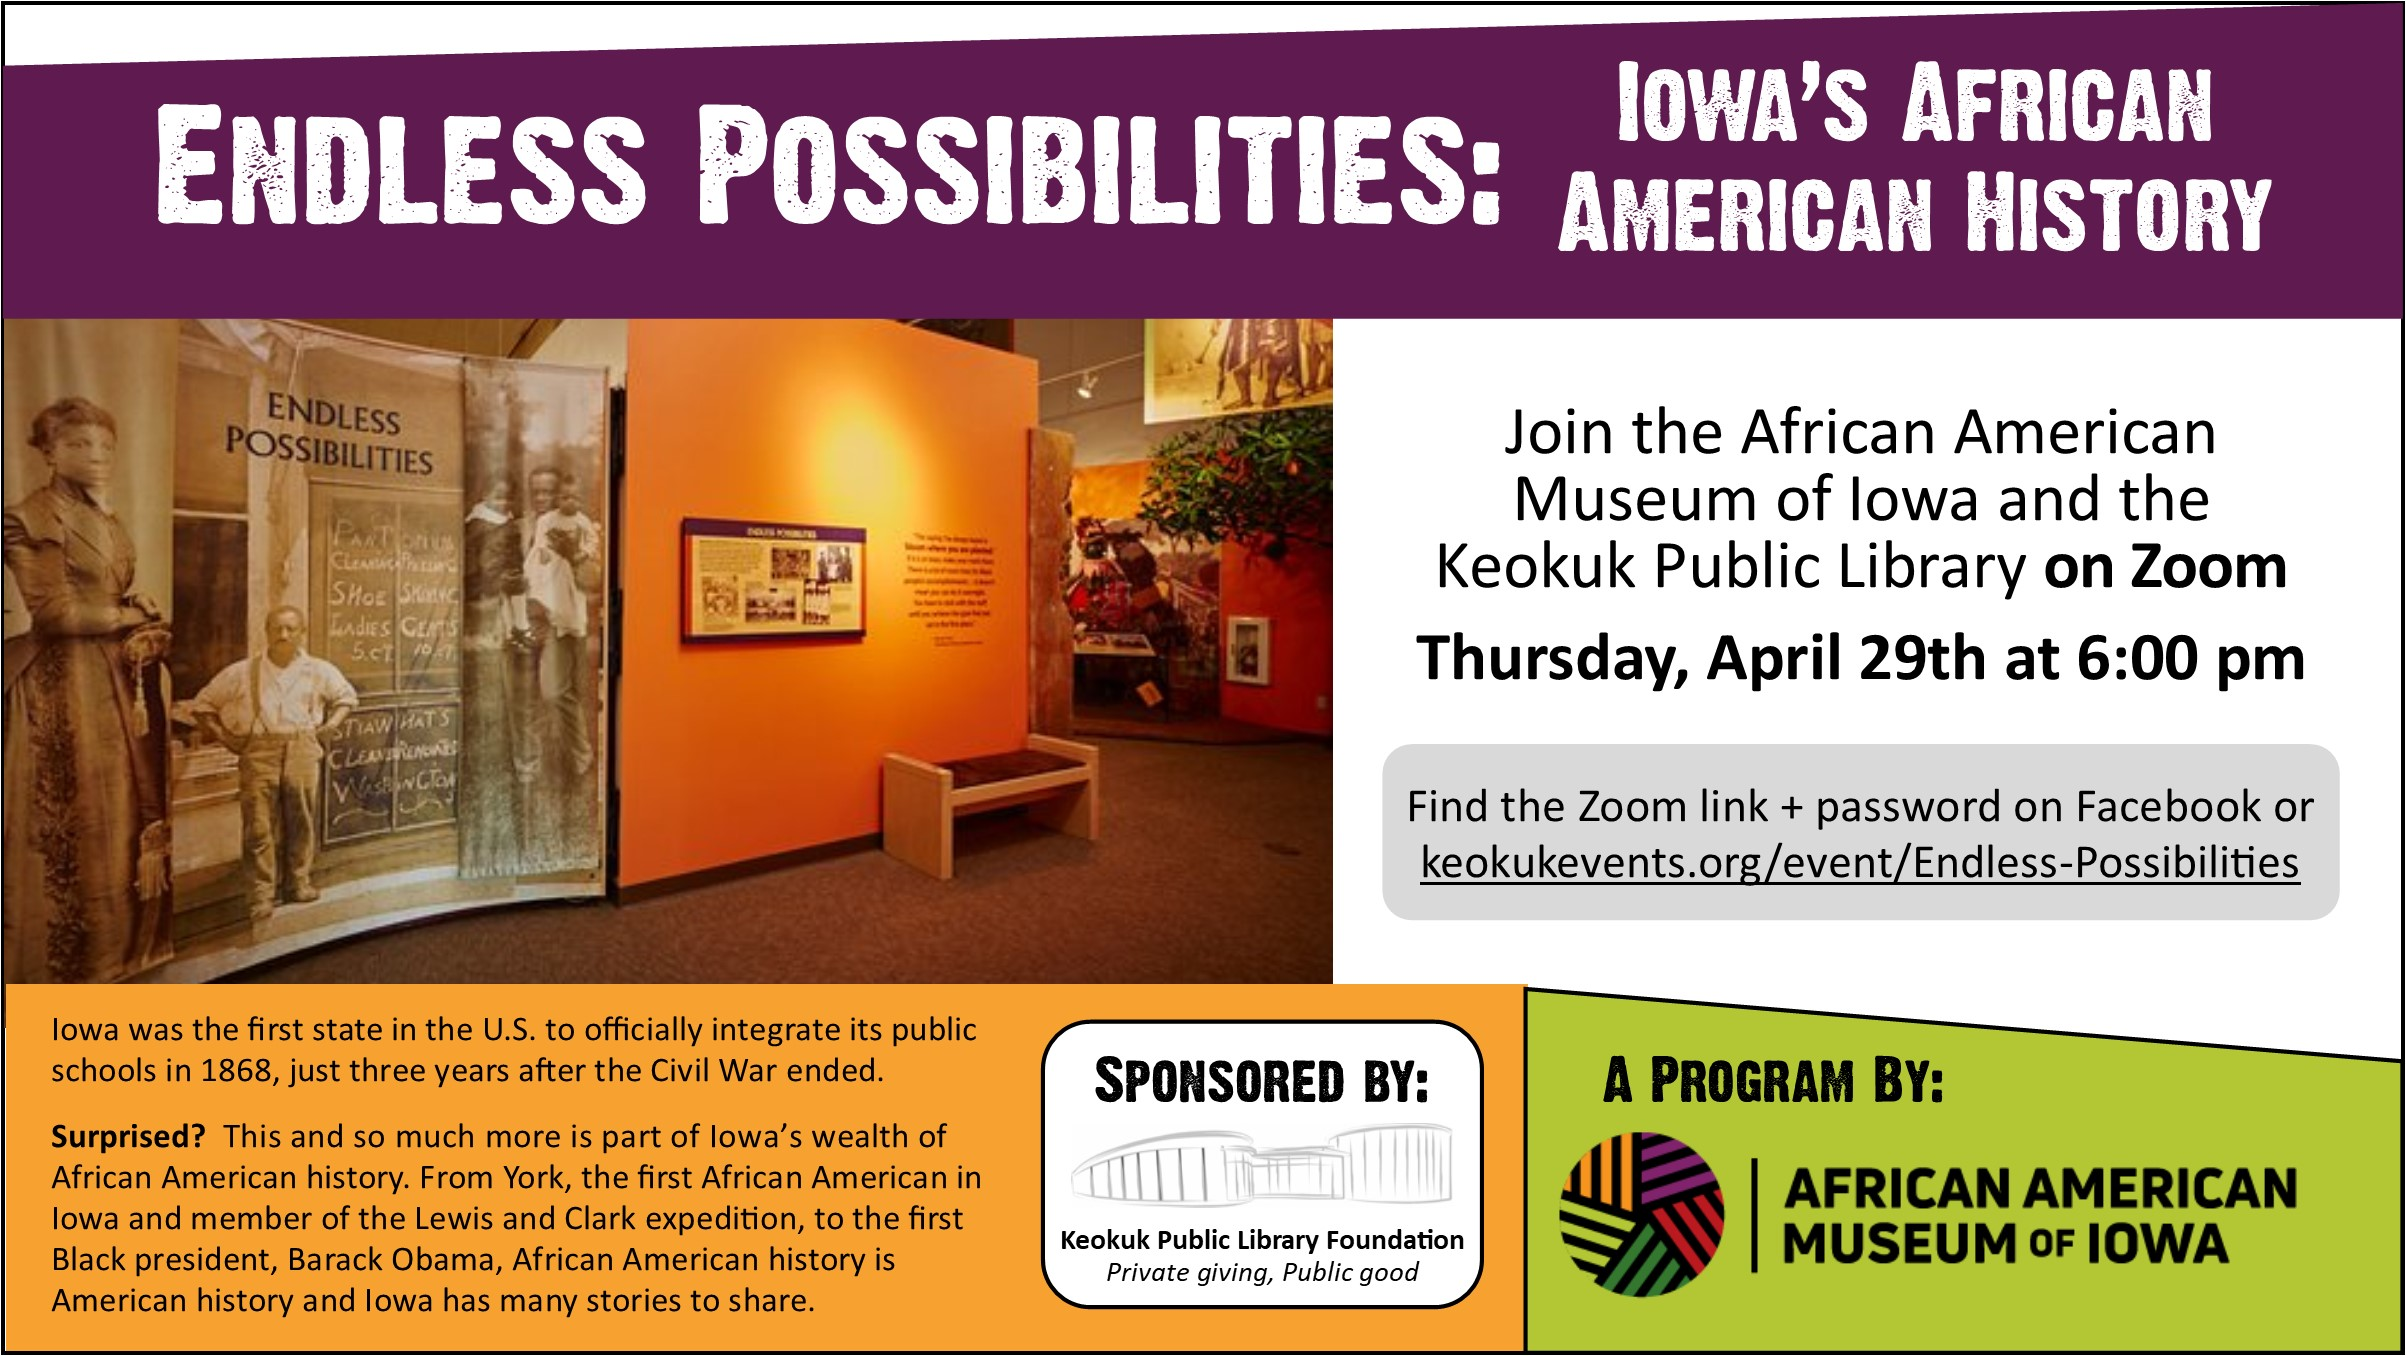 """African American Museum of Iowa will present """"Endless Possibilities"""" program on April 29 at 6:00 pm!"""